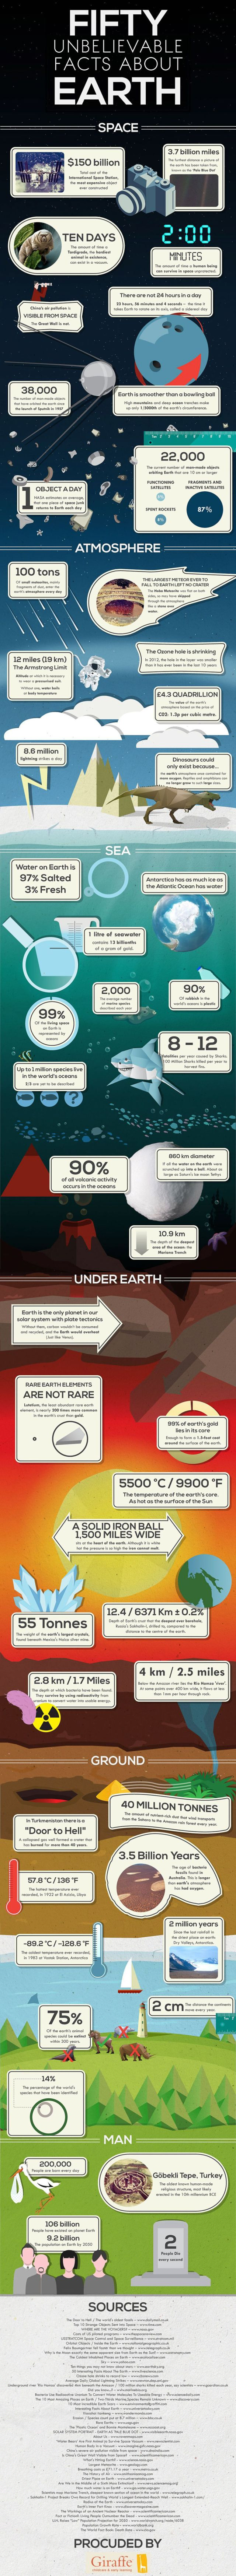 Simple Facts That Will Increase Your Knowledge about Our Planet